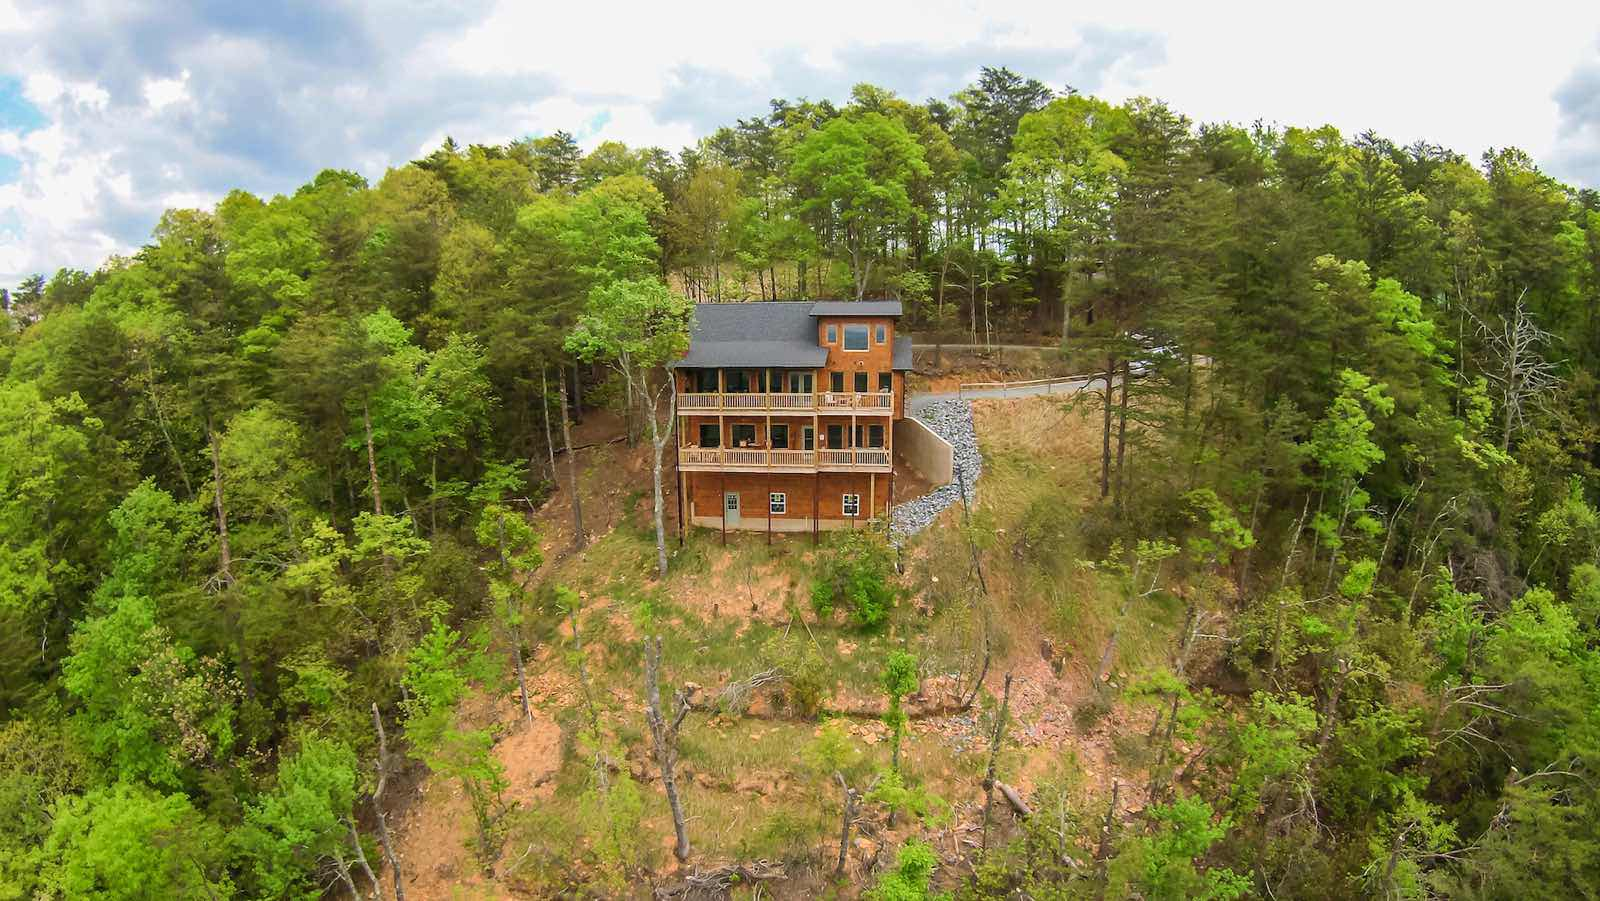 All About The View Rental Cabin - Blue Ridge, GA